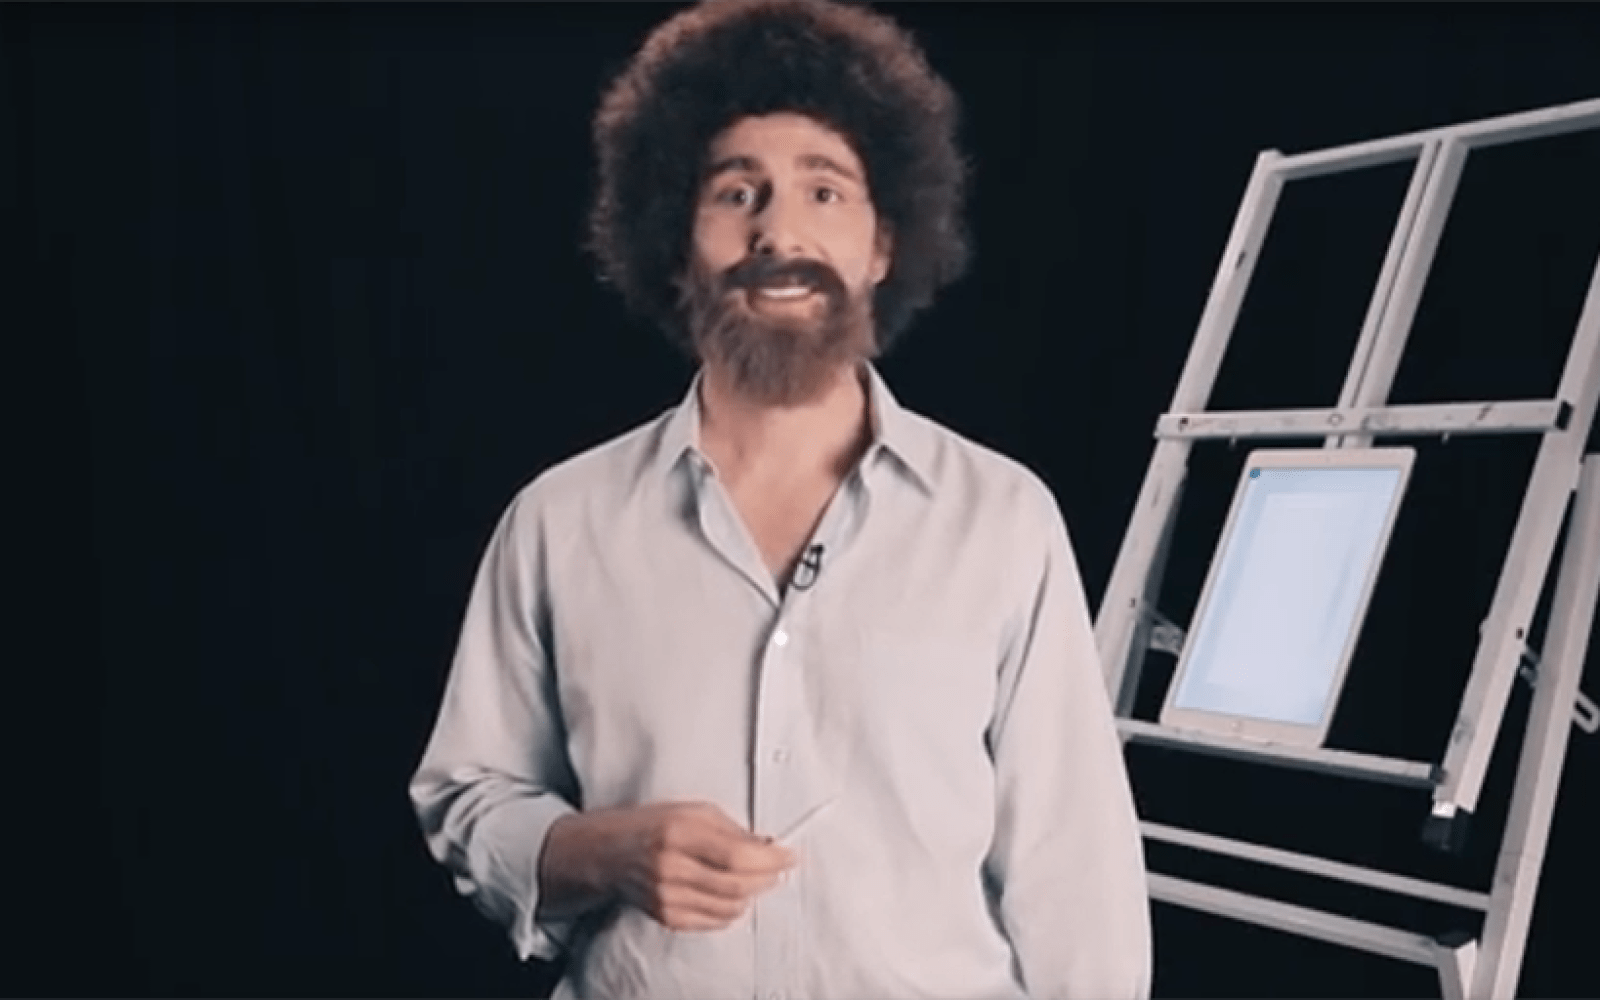 Four-part video tutorial taps Bob Ross lookalike to promote Photoshop Sketch for iOS